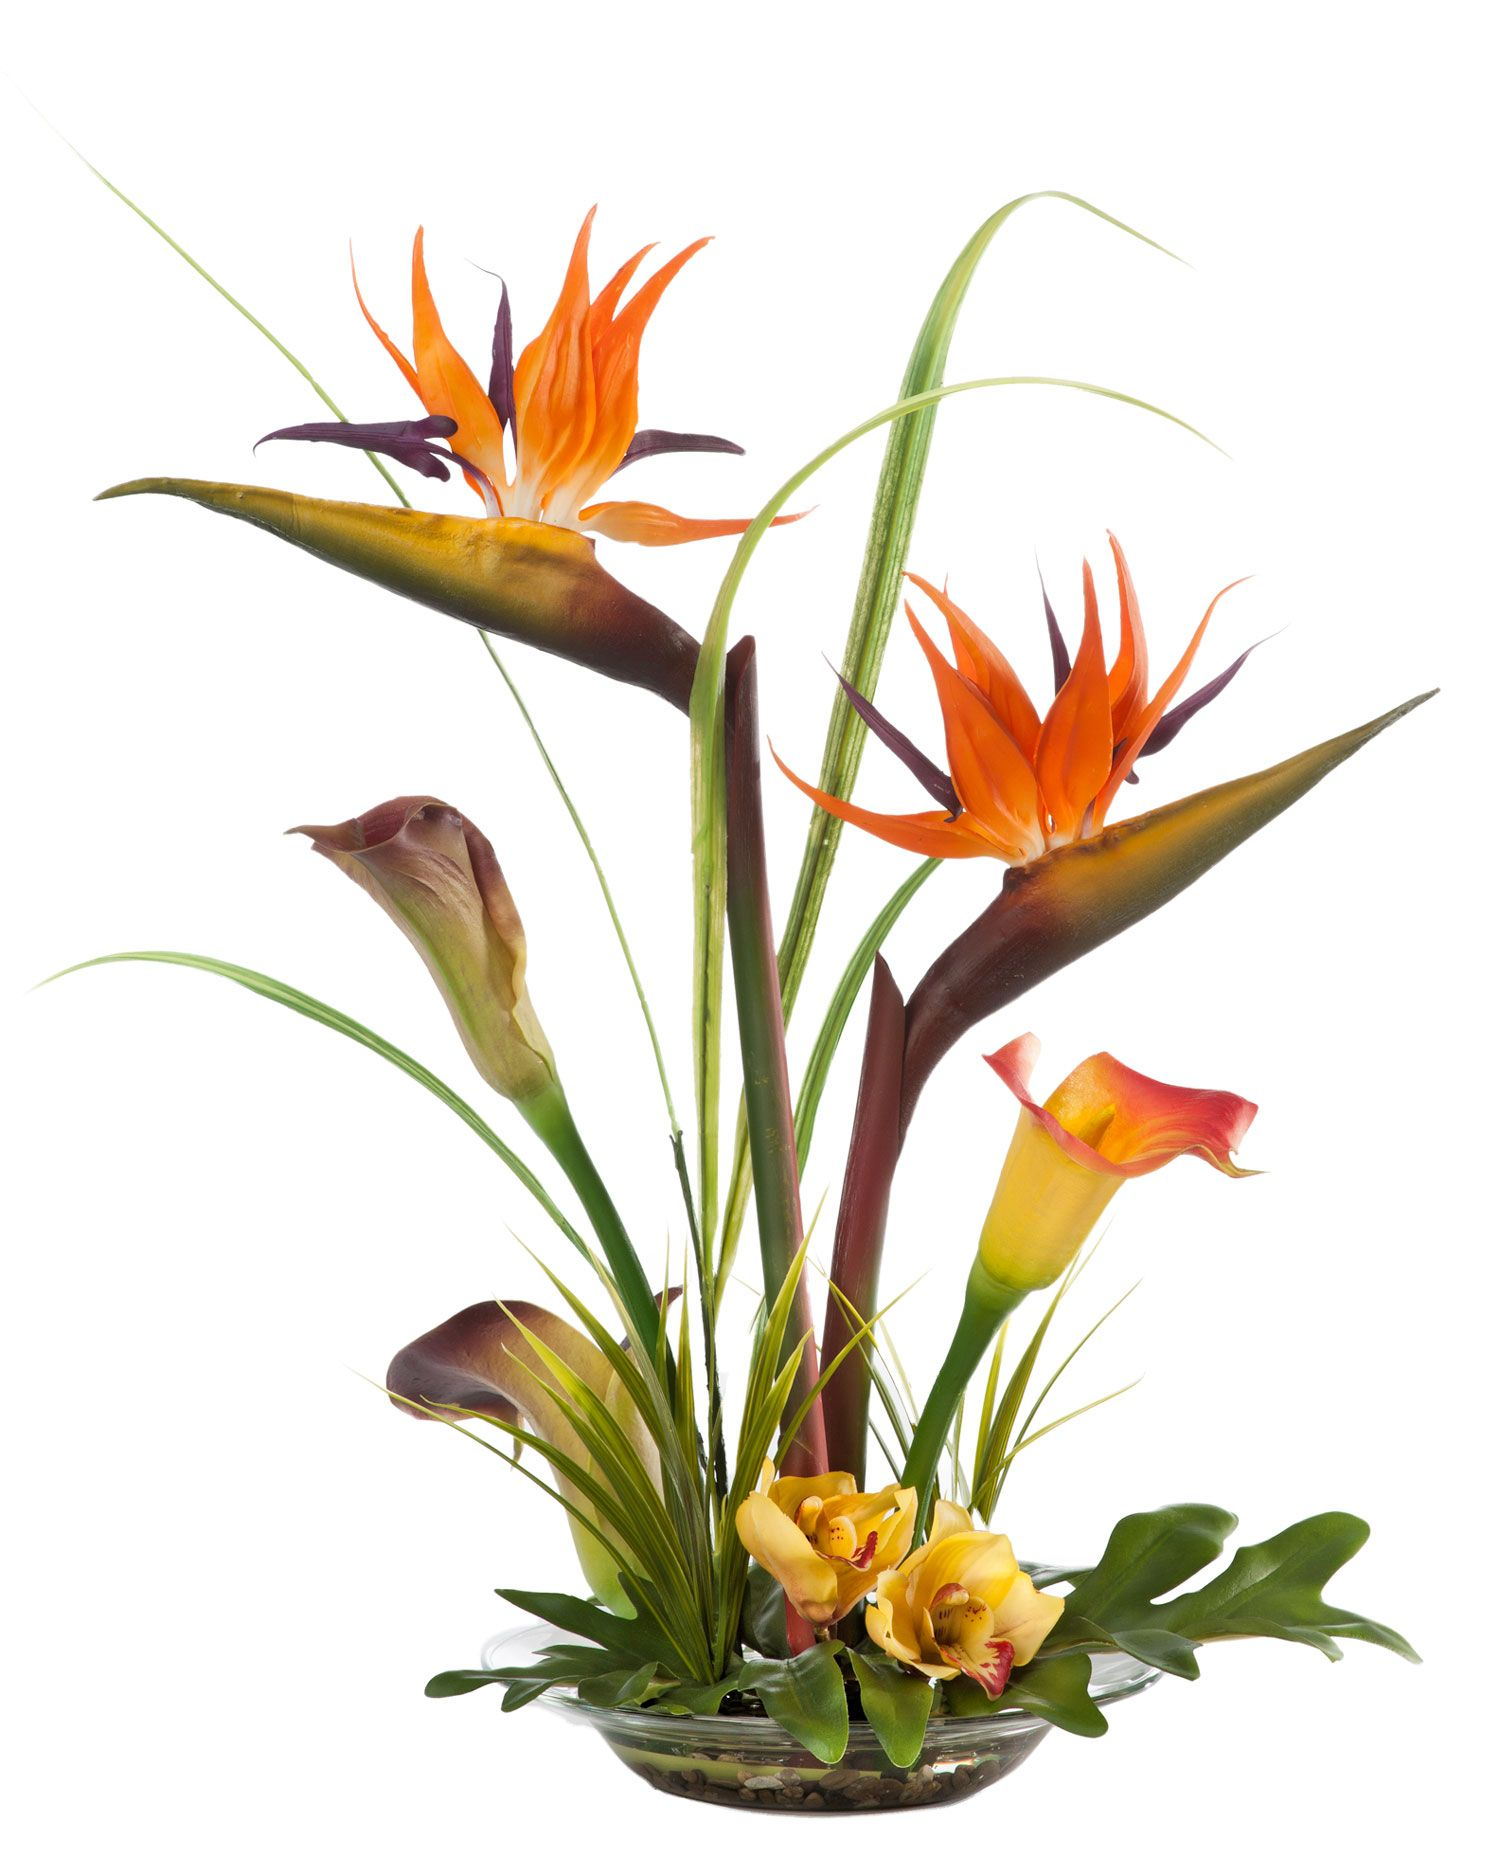 Bird Of Paradise Calla Lily Silk Arrangement A Serene And Lifelike Tropical Tropical Flower Arrangements Silk Flower Centerpieces Birds Of Paradise Flower